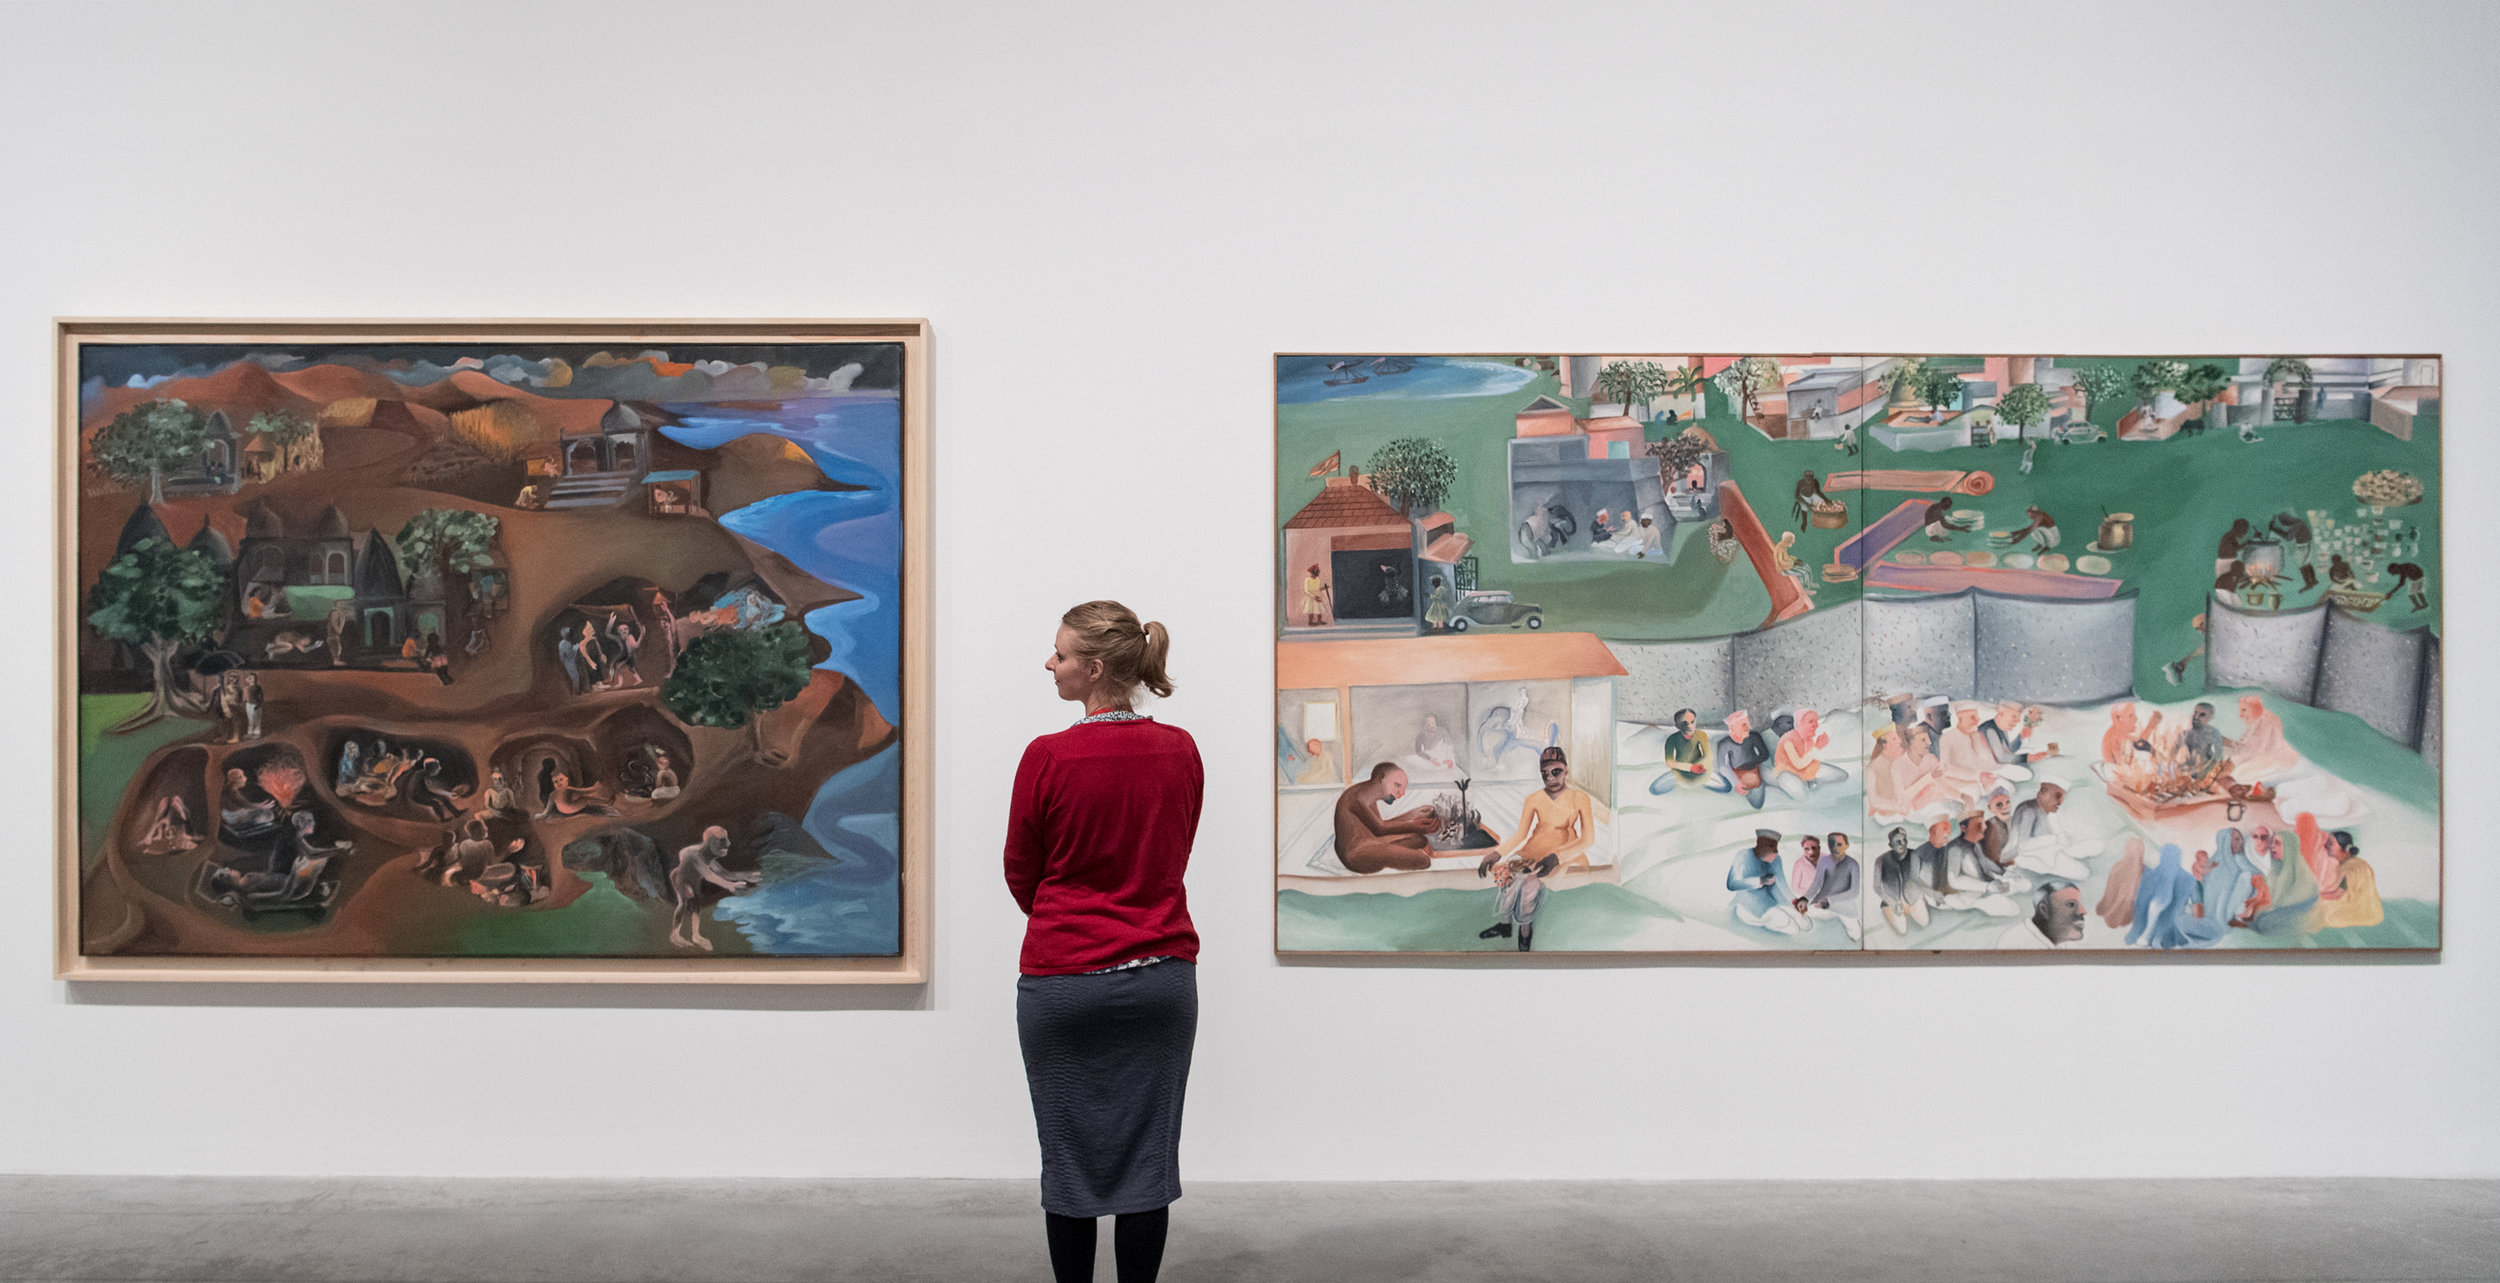 "Bhupen Khakhar, ""You Can't Please All"", Tate Modern, 2016, installation view. Left to right: 'Jatra', 1997–9, oil paint on canvas, 177.5 x 239 cm; 'Yagnya or Marriage', 2000, diptych: oil paint on canvas, 173.5 x 346.6 cm. Image courtesy Tate Modern."